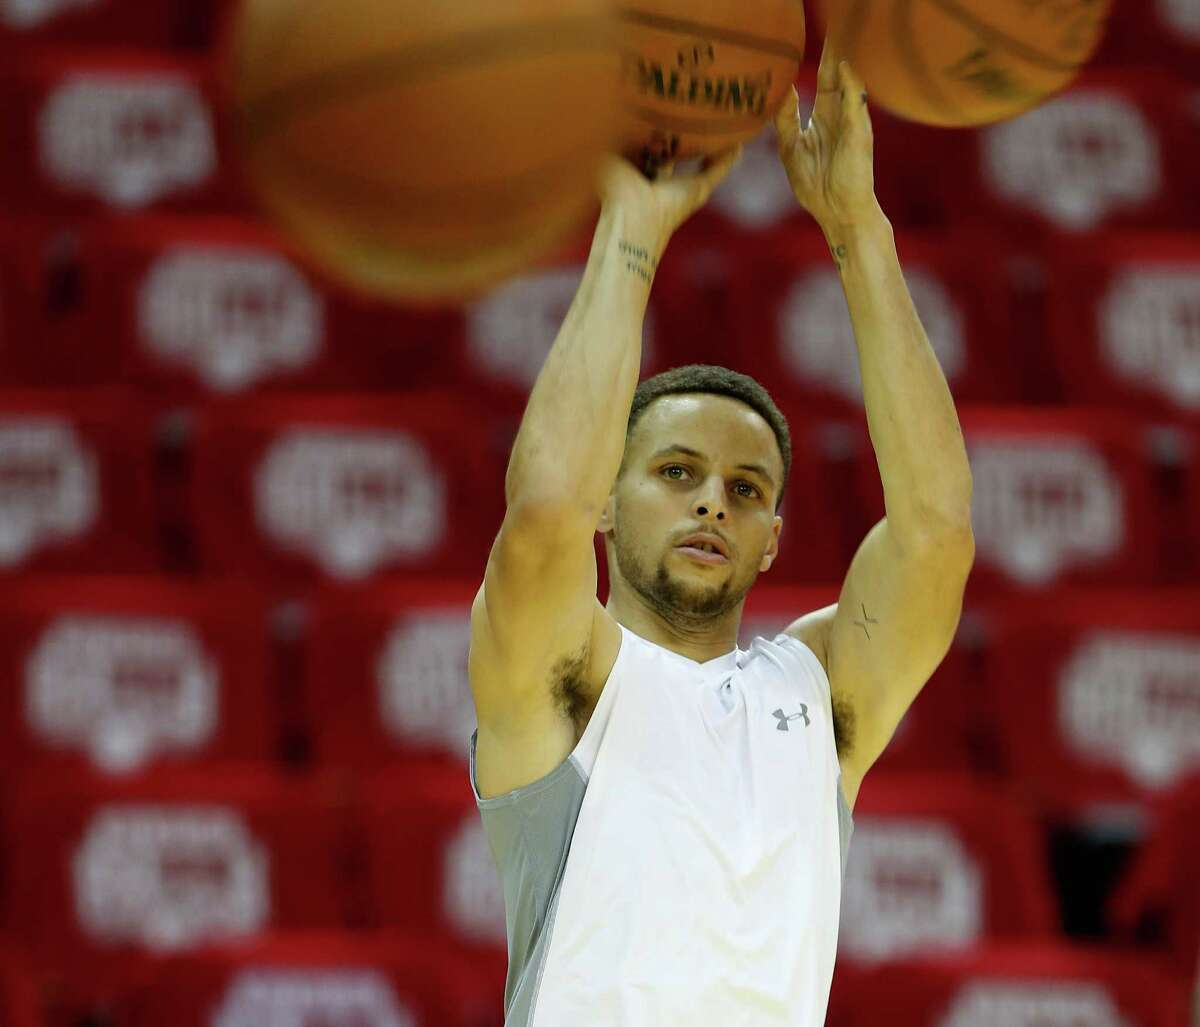 Golden State Warriors point guard Stephen Curry shoots baskets during team practice at Toyota Center, Wednesday, April 20, 2016, in Houston, as they prepared for Game 3 against the Houston Rockets in Round 1 of the playoffs.